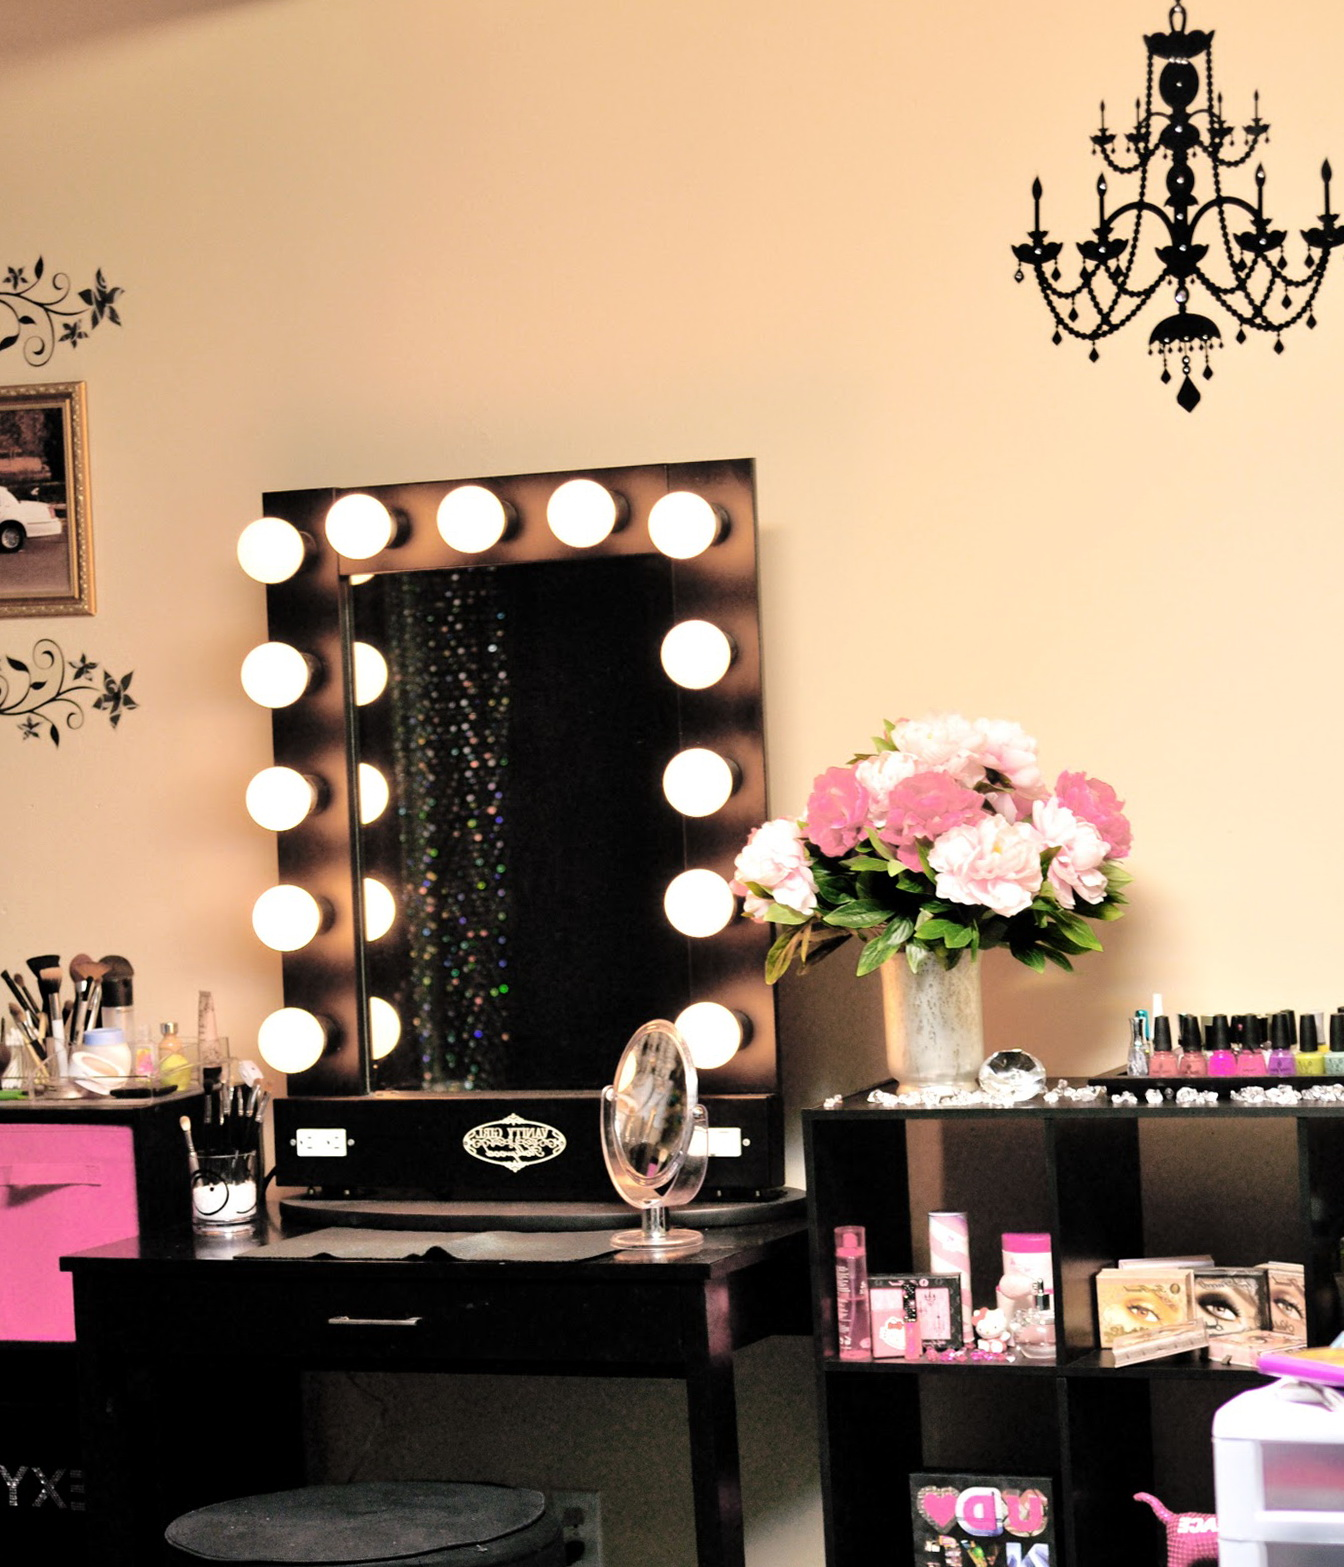 Lighted Vanity Mirror Target : Light Up Vanity Mirror Target Home Design Ideas